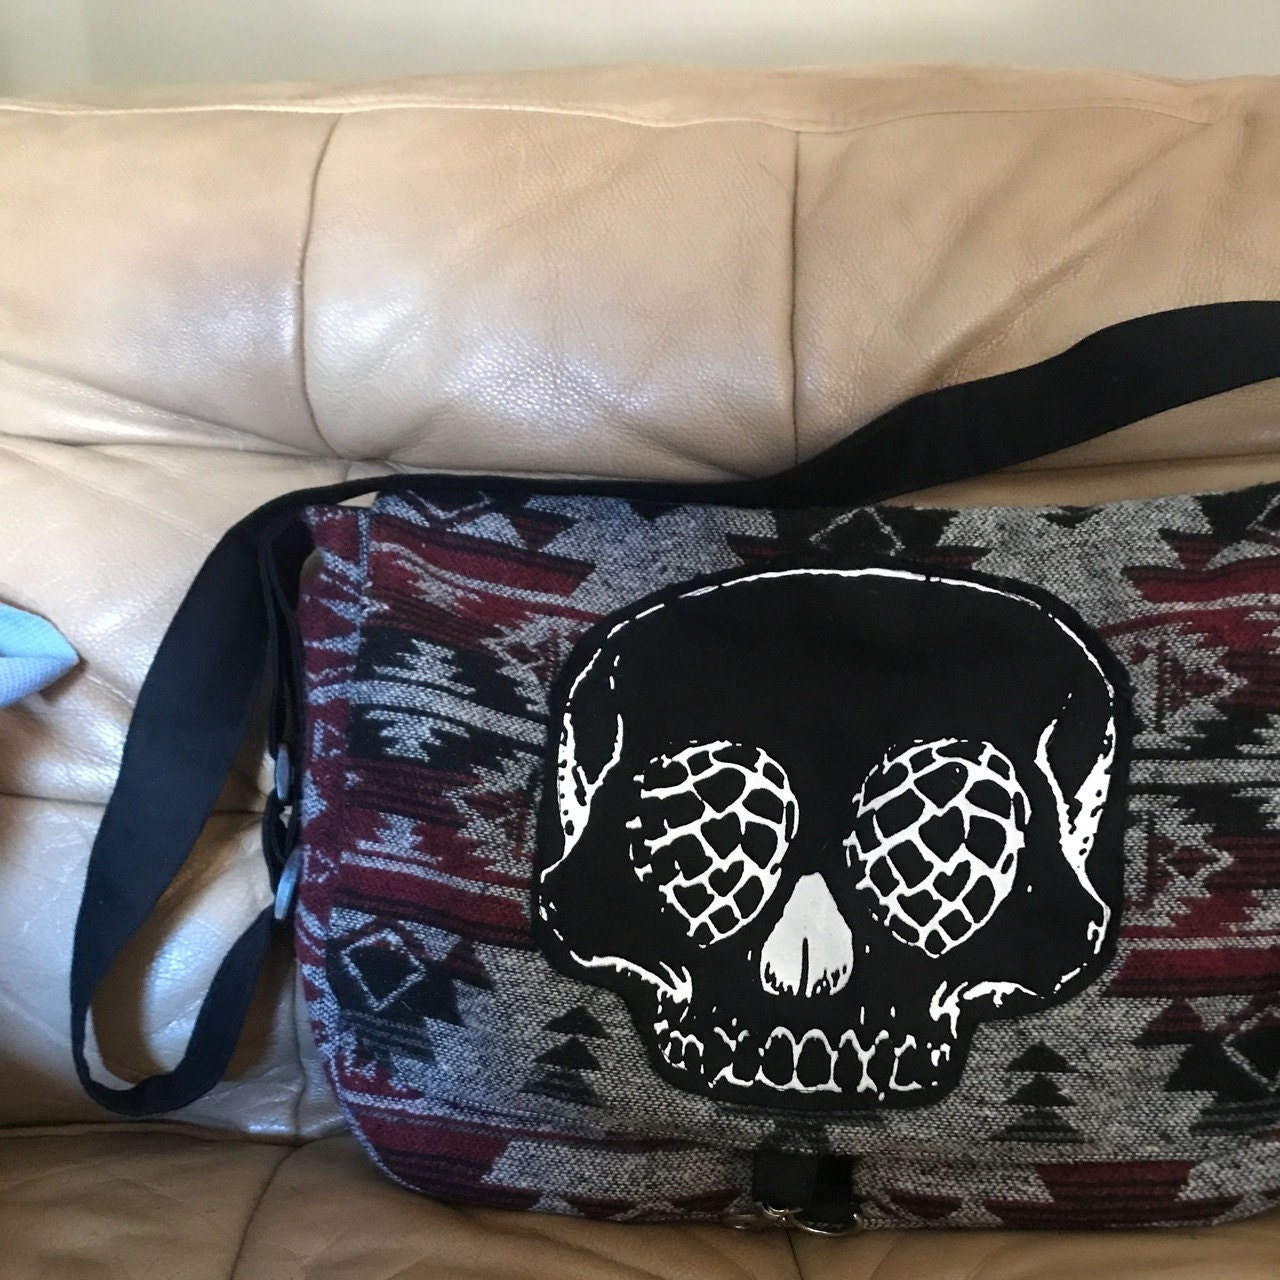 Adrianne Bunch added a photo of their purchase